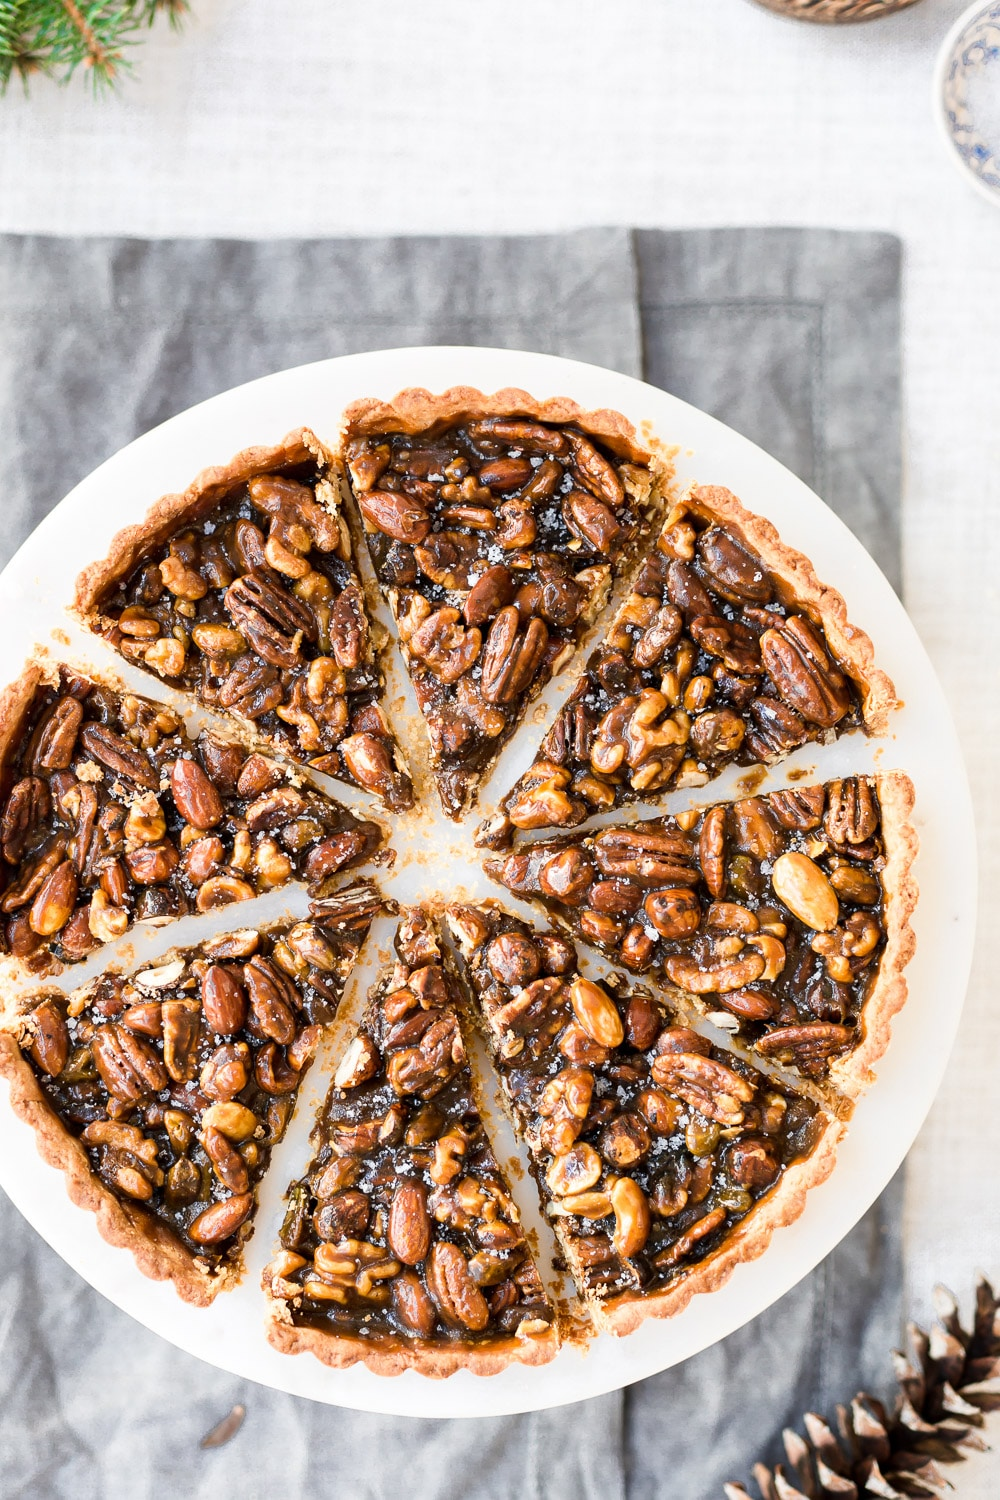 Sliced Caramel Nut Tart